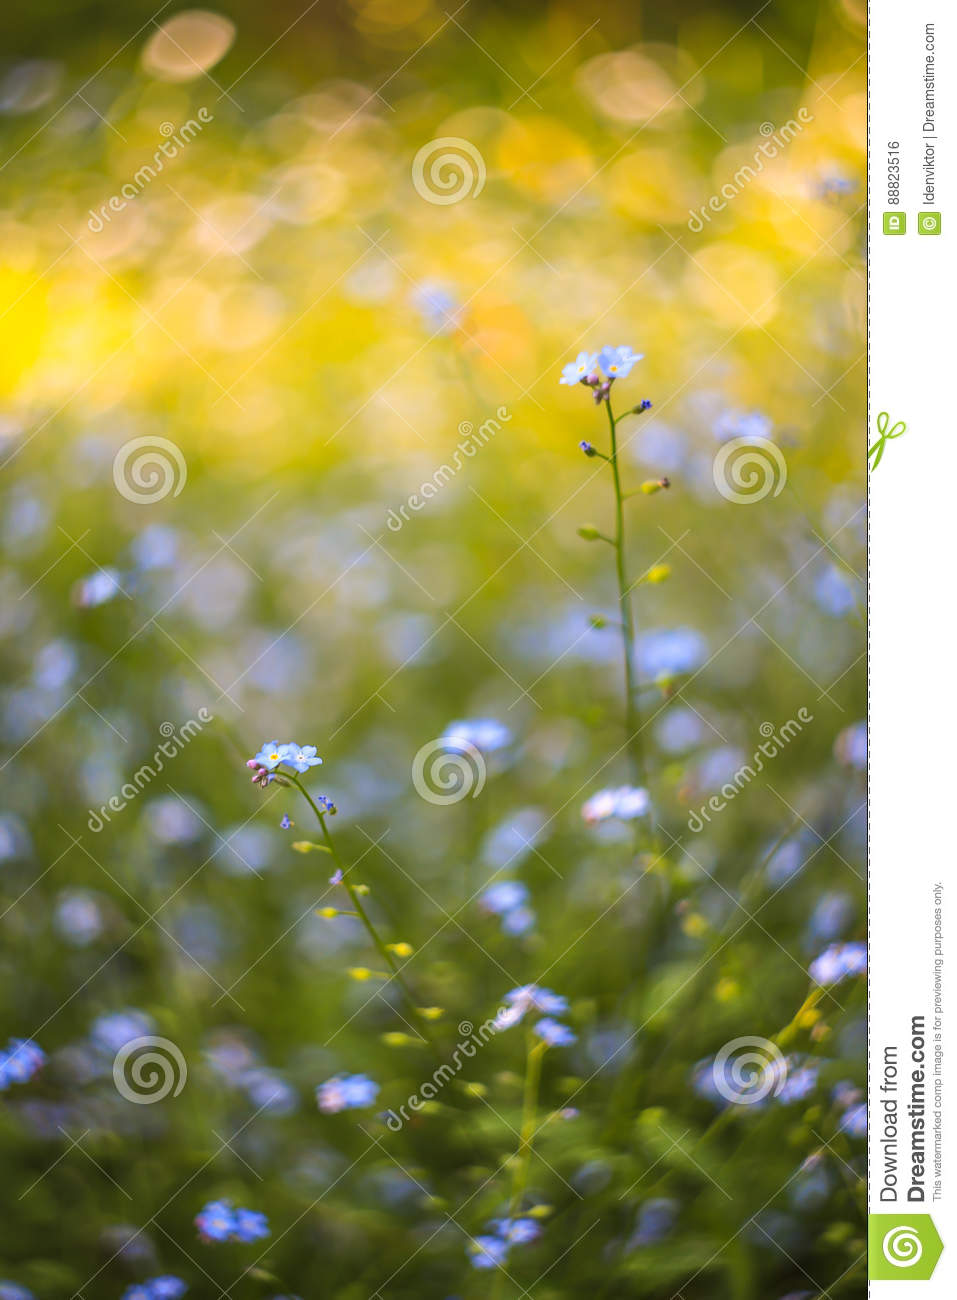 Plants for spring and summer - Abstract Bright Blurred Background With Spring And Summer With Small Blue Flowers And Plants With